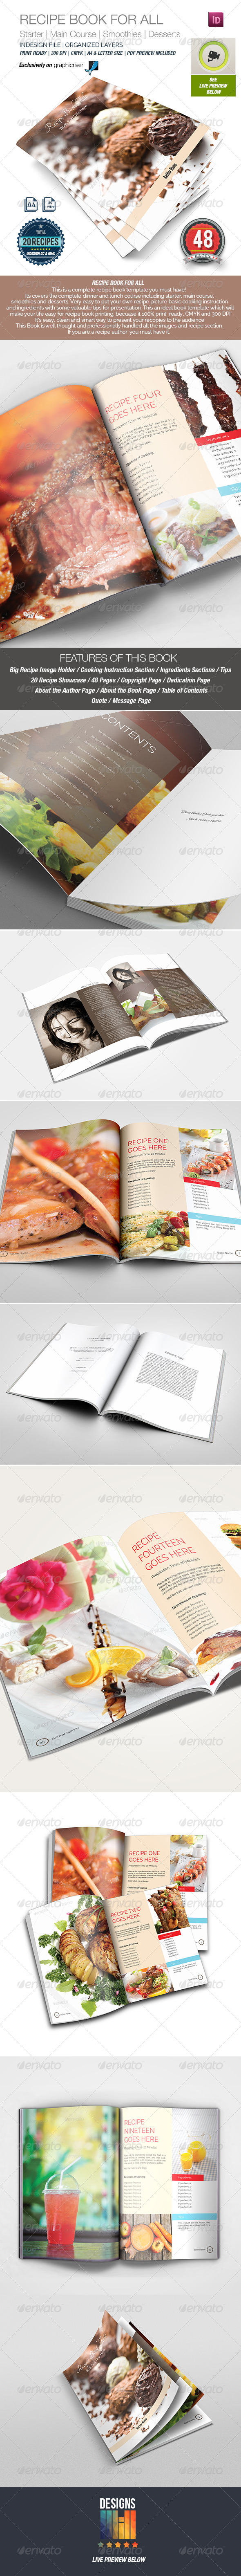 GraphicRiver Recipe Book Template for All 8717828